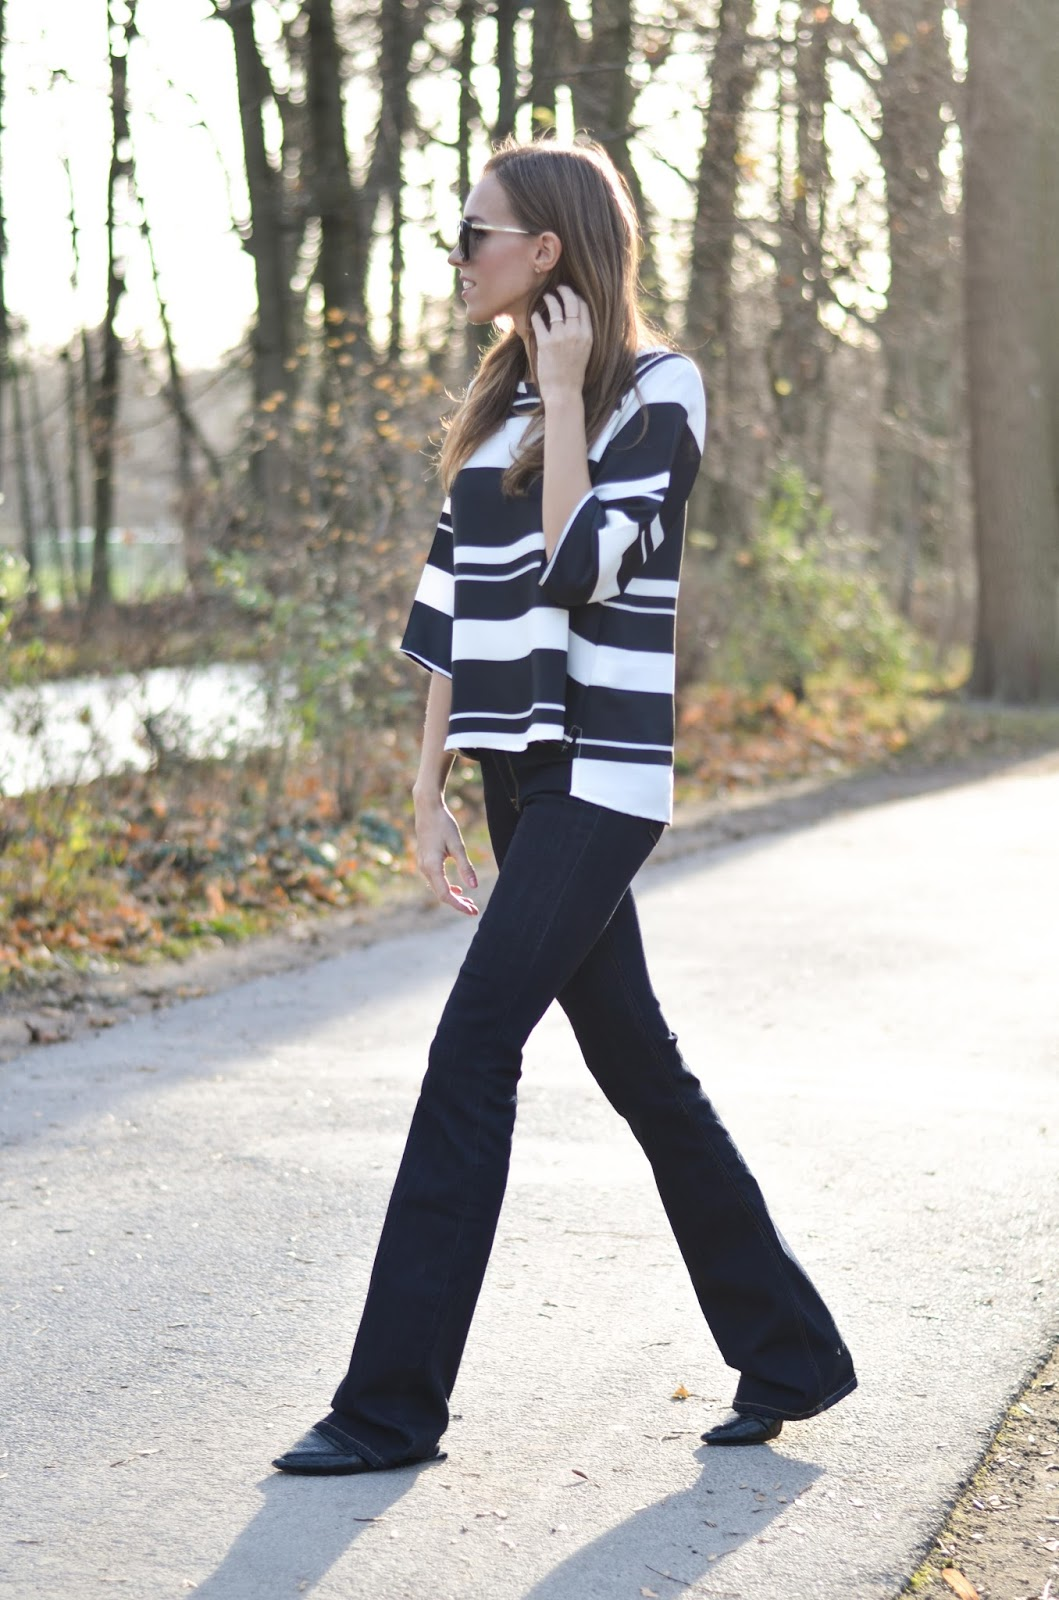 kristjaana mere striped top flare jeans 70s inspired fashion outfit